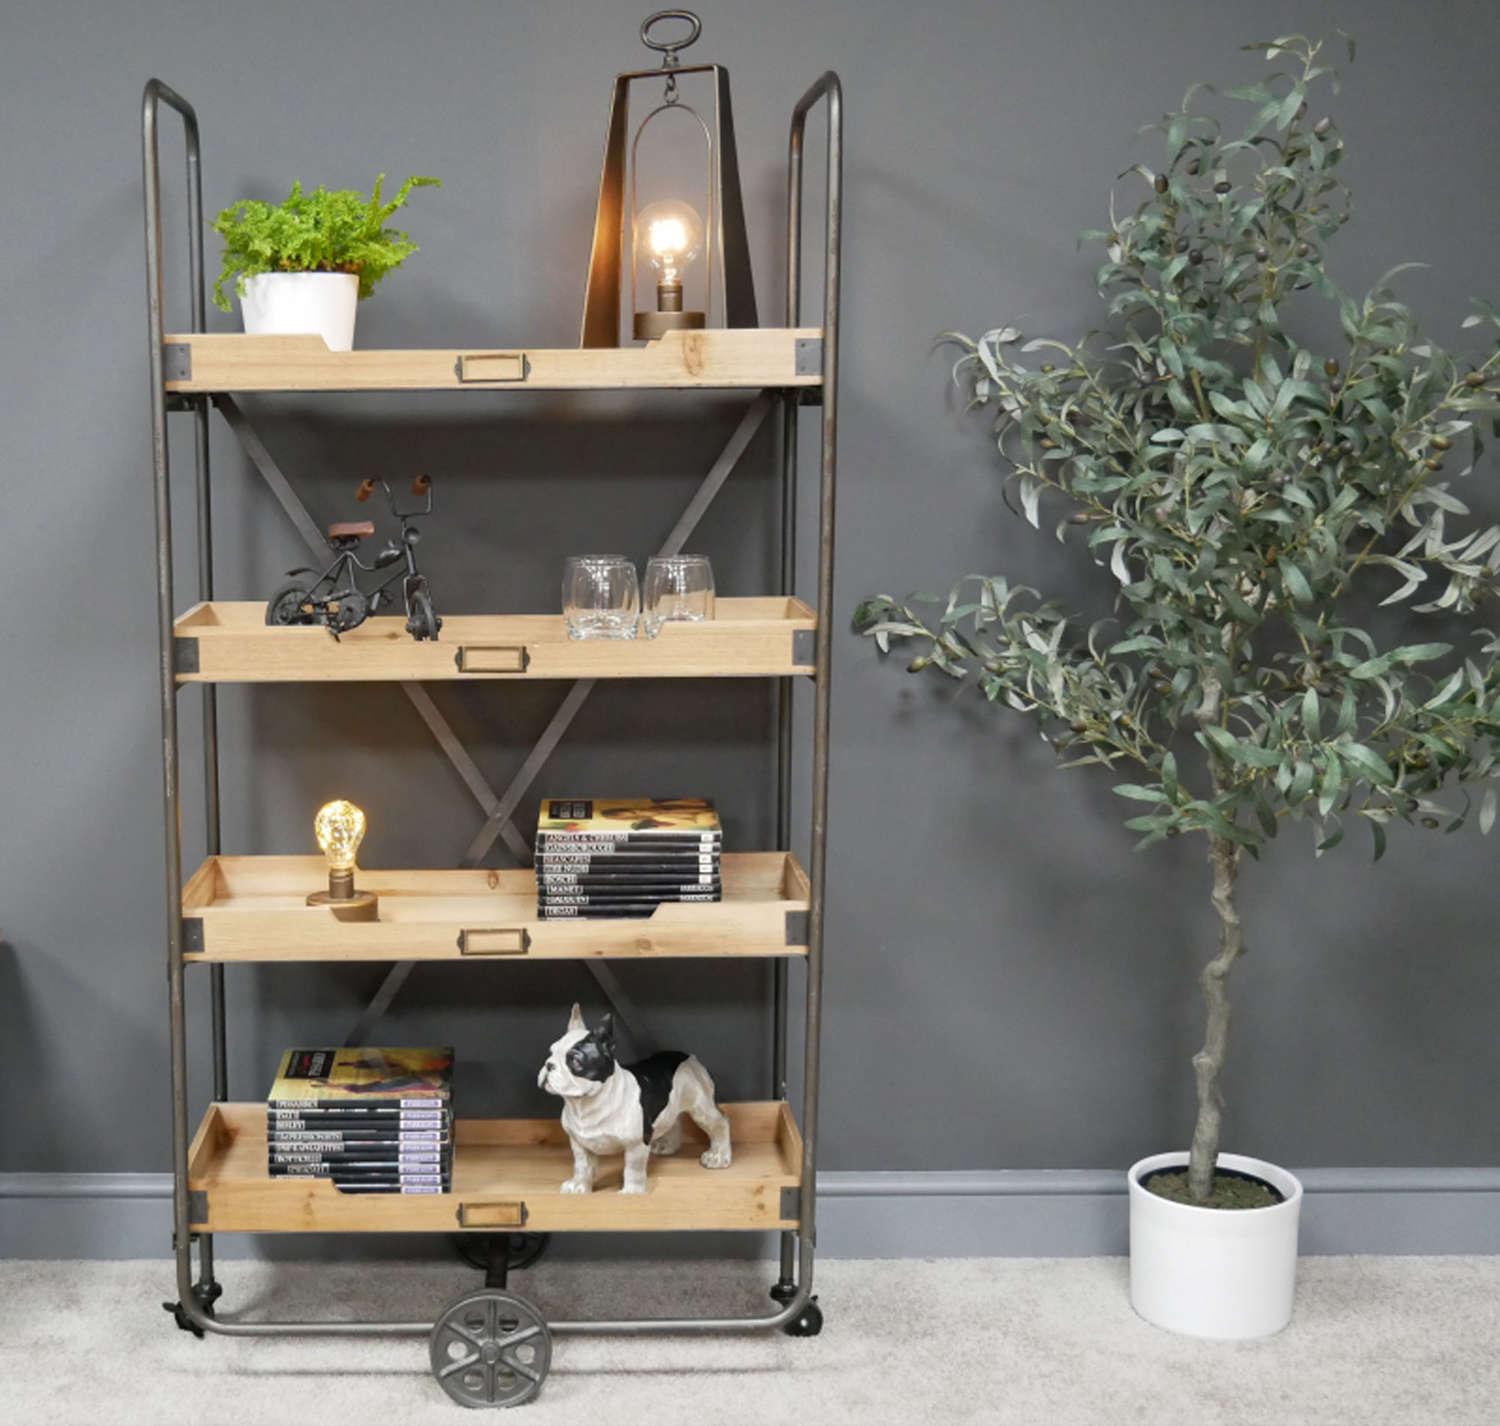 Industrial Pipework shelving unit on wheels